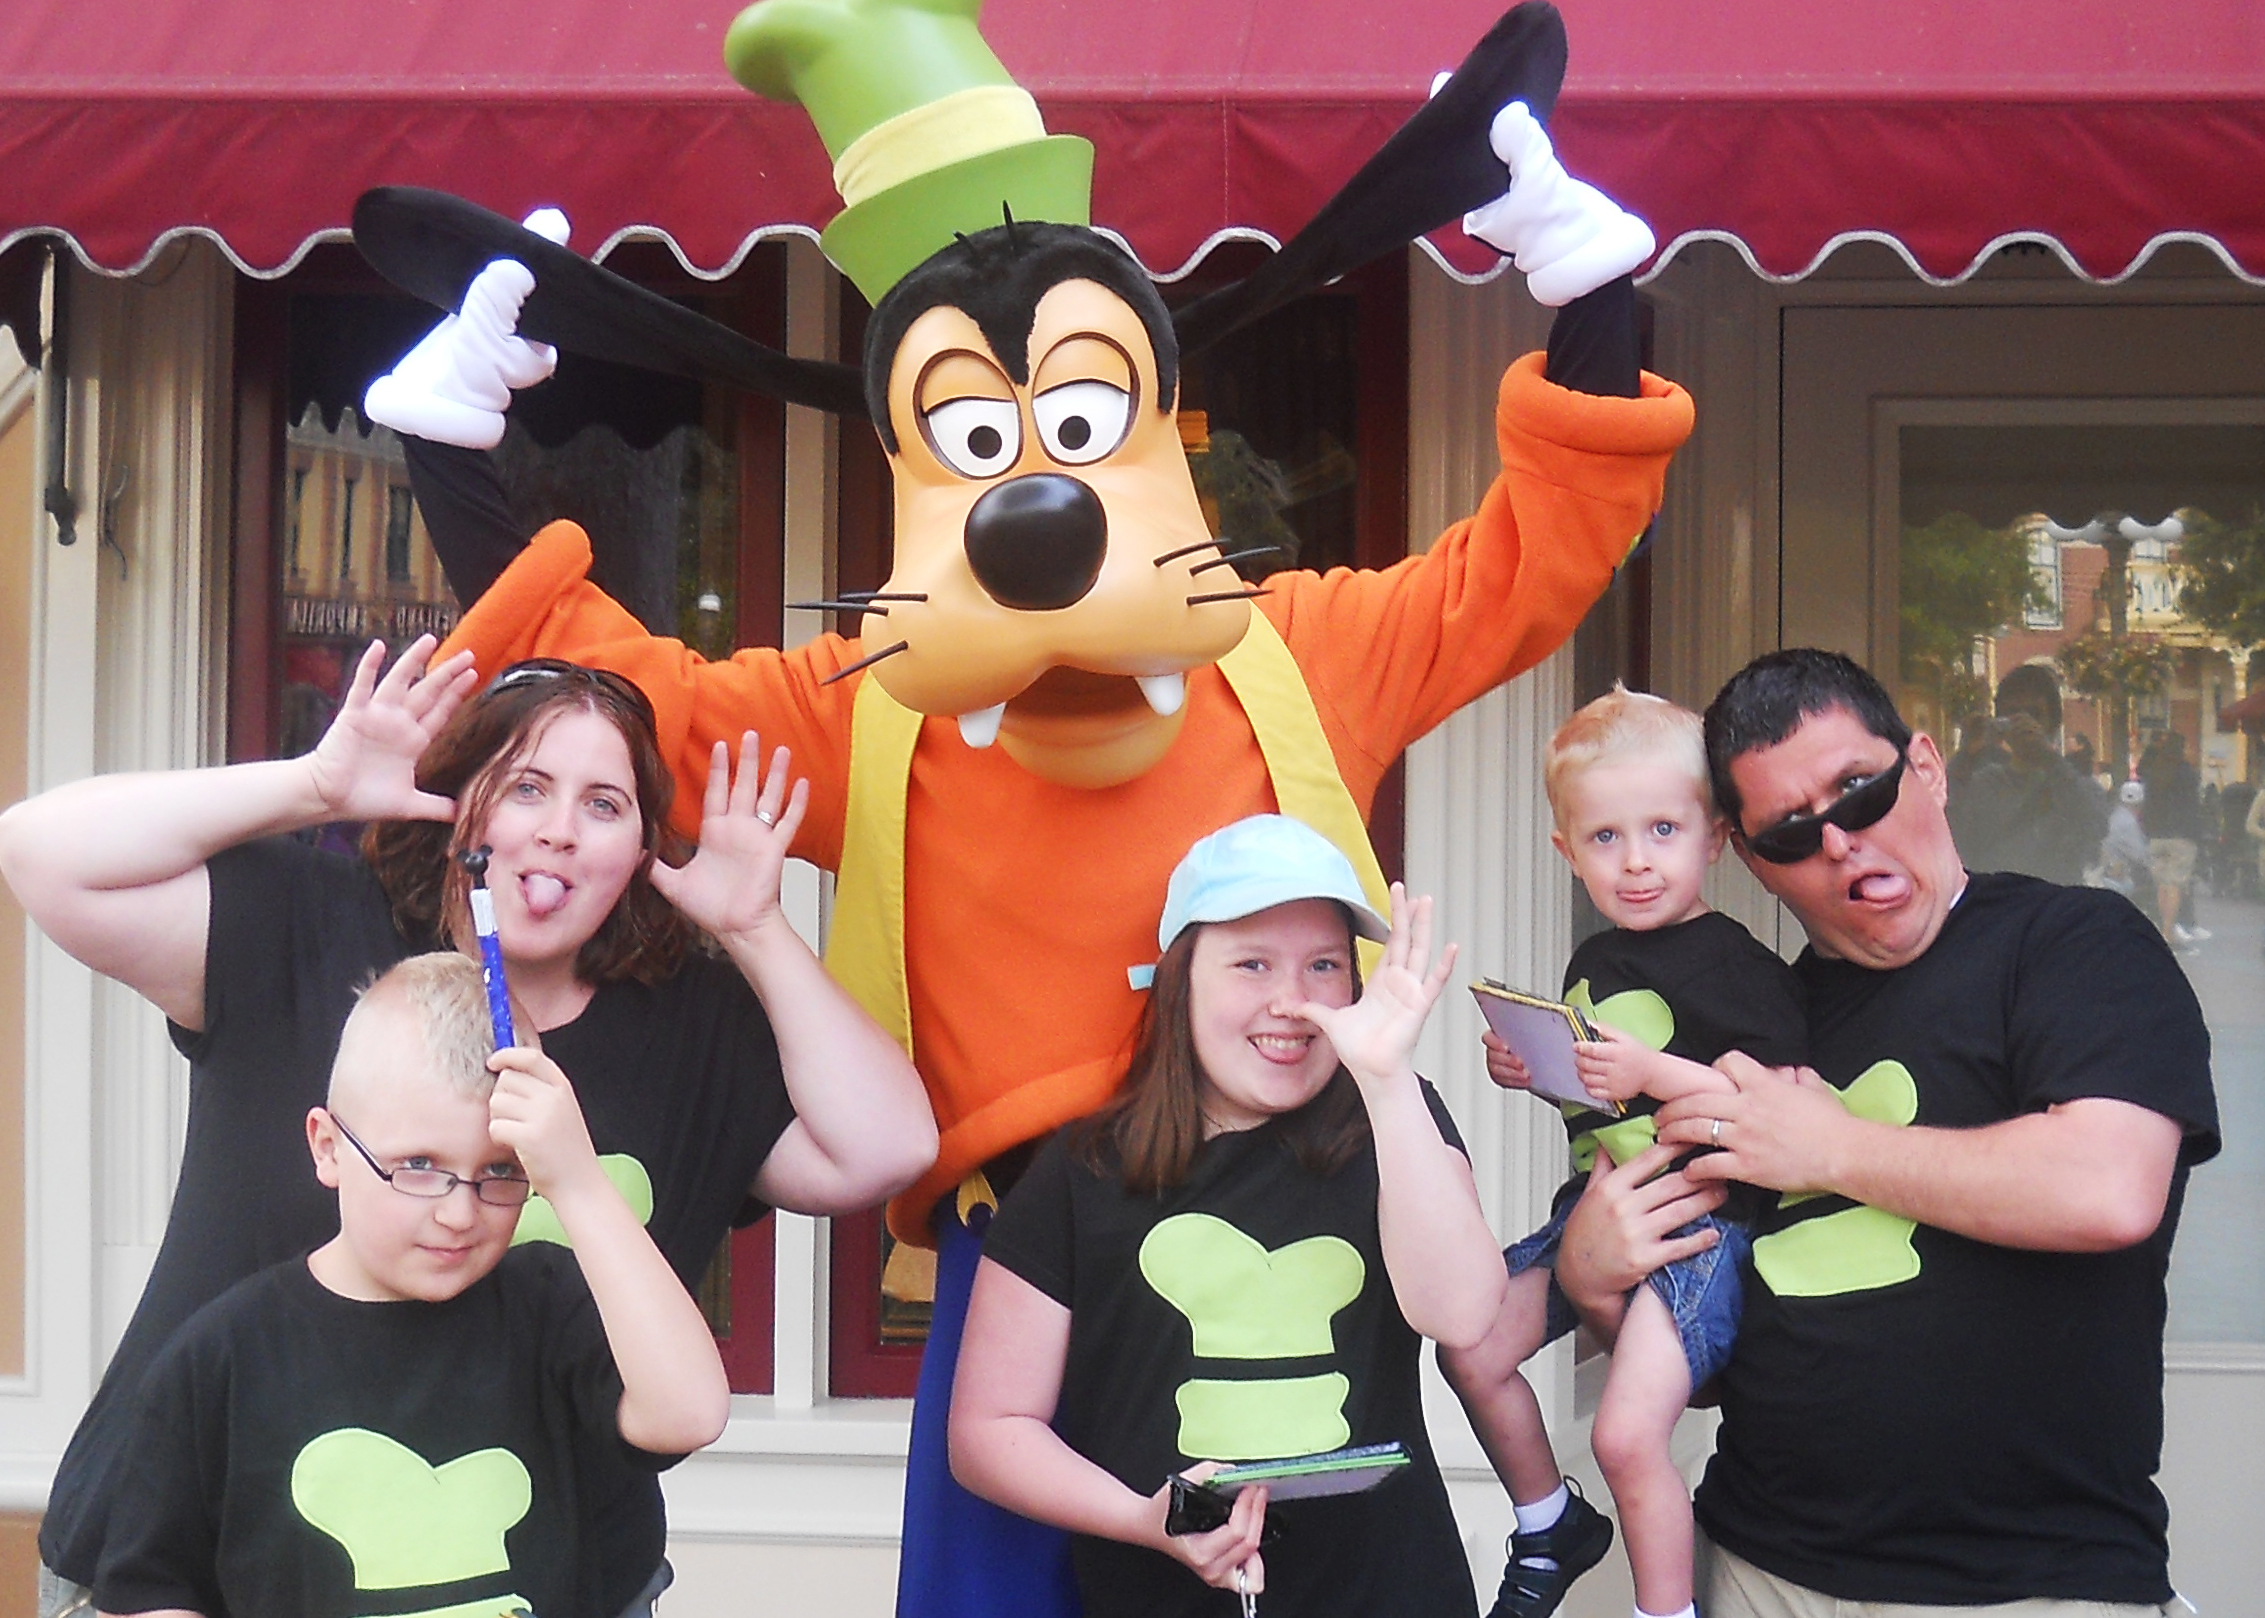 Family with Goofy at Disneyland